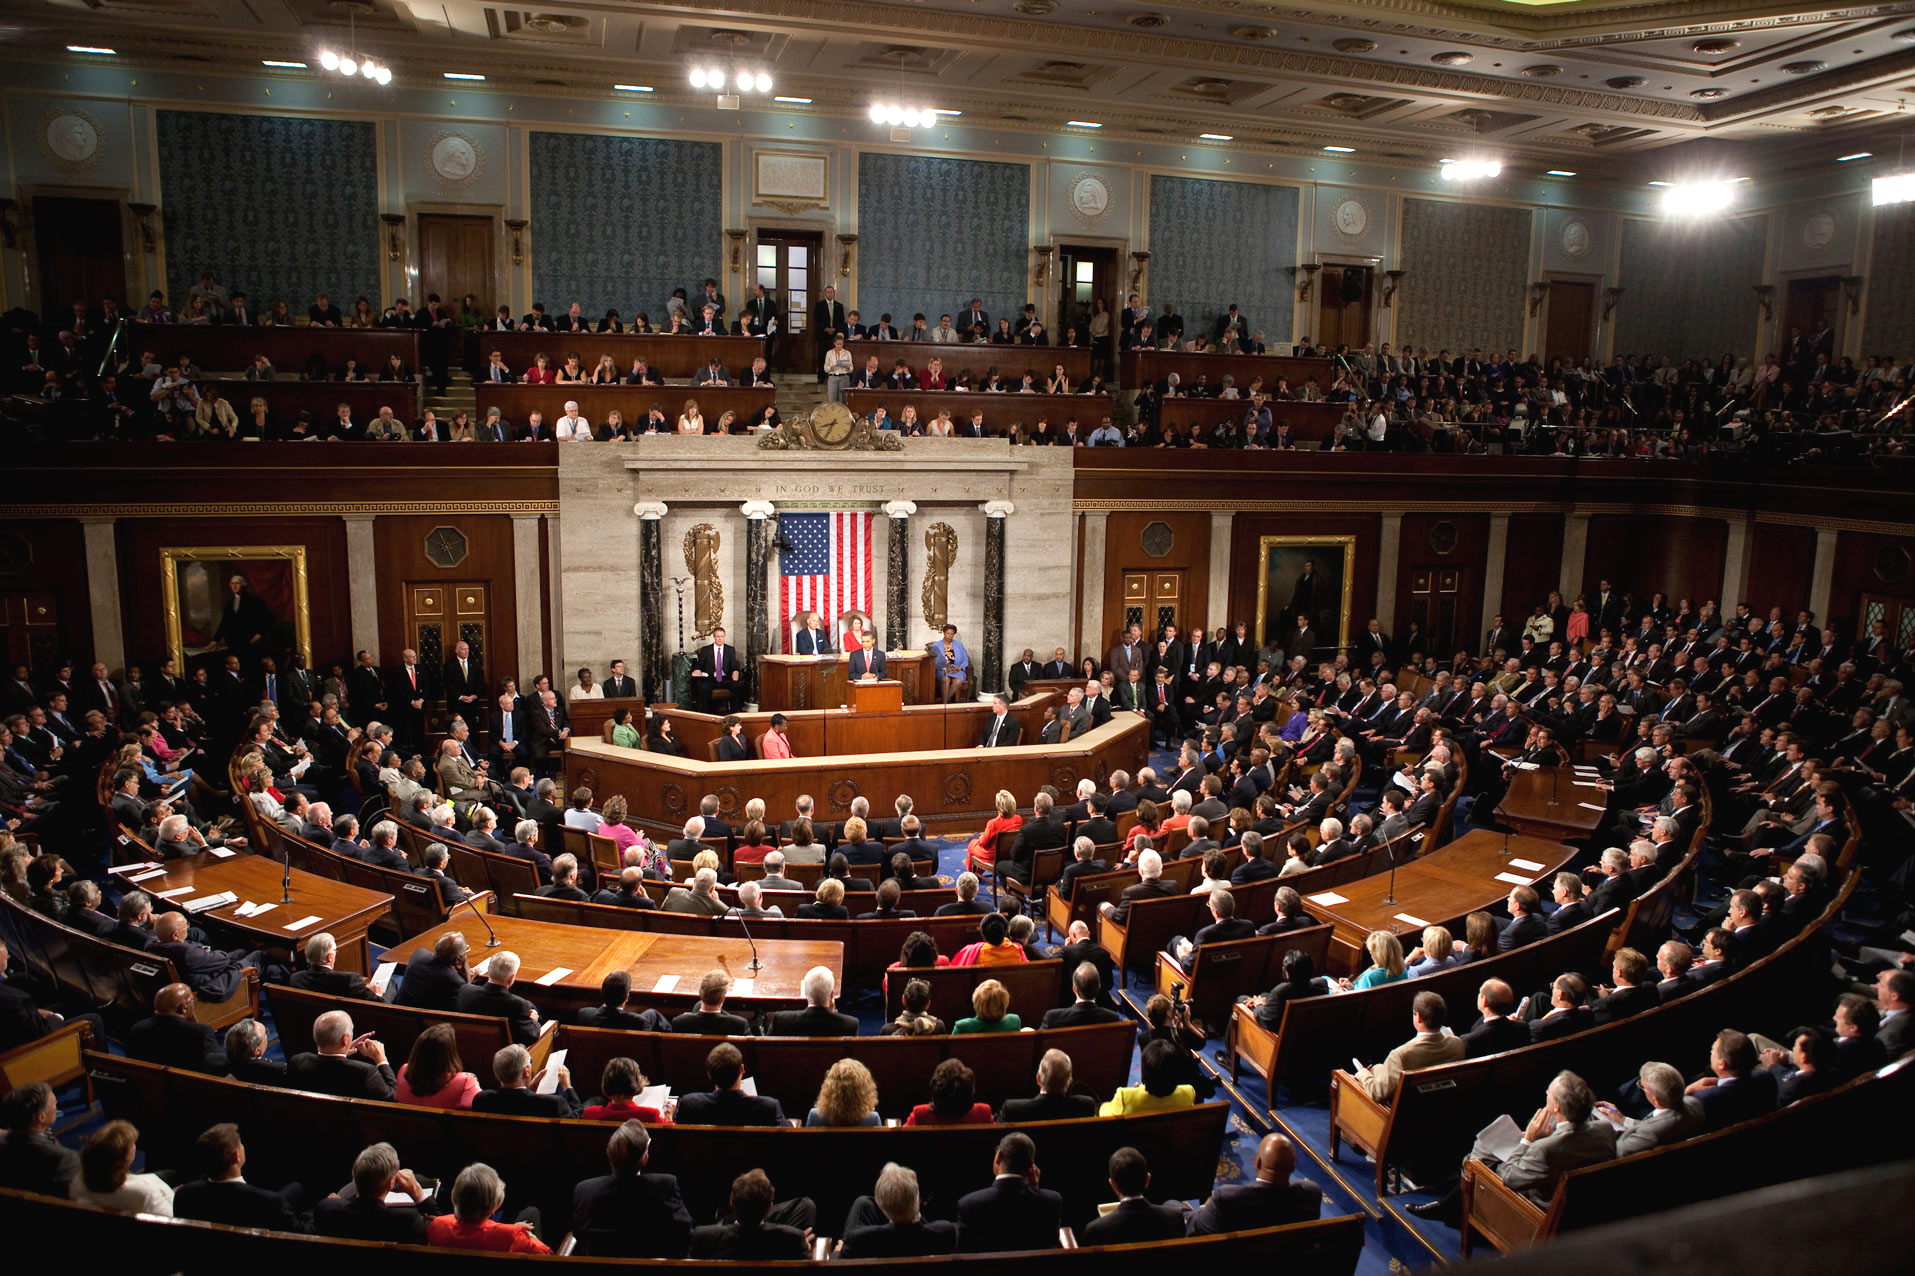 http://upload.wikimedia.org/wikipedia/commons/f/fb/Obama_Health_Care_Speech_to_Joint_Session_of_Congress.jpg